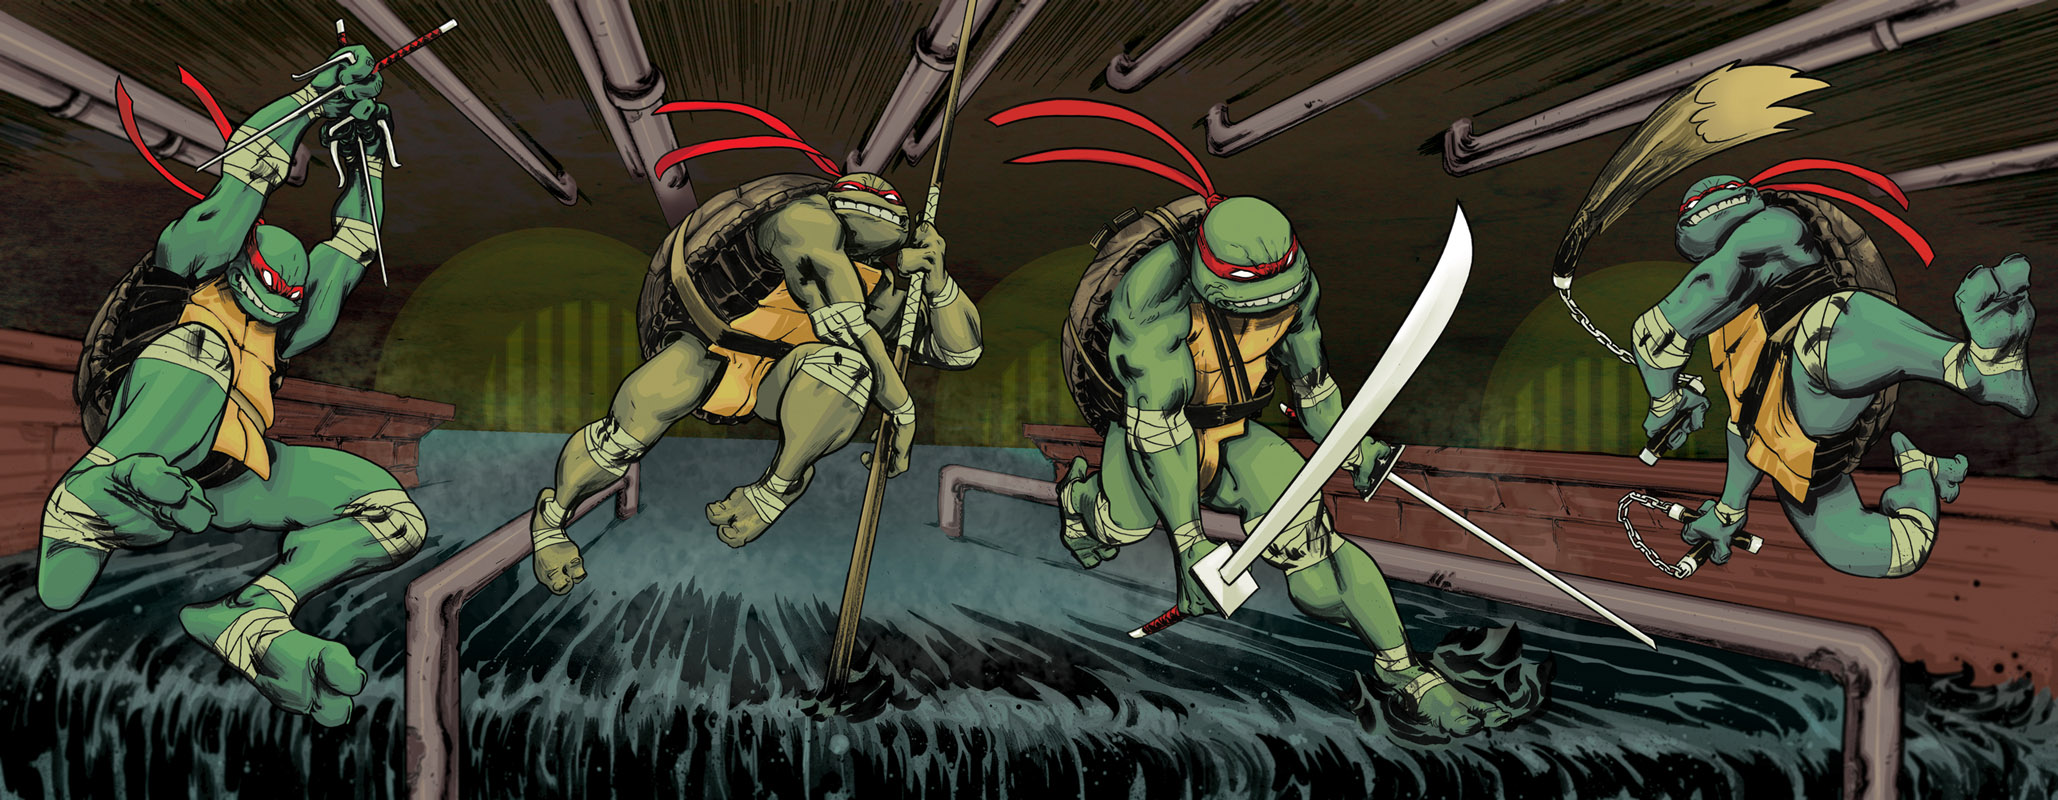 Kevin Eastman, Creator of Teenage Mutant Ninja Turtles Interview